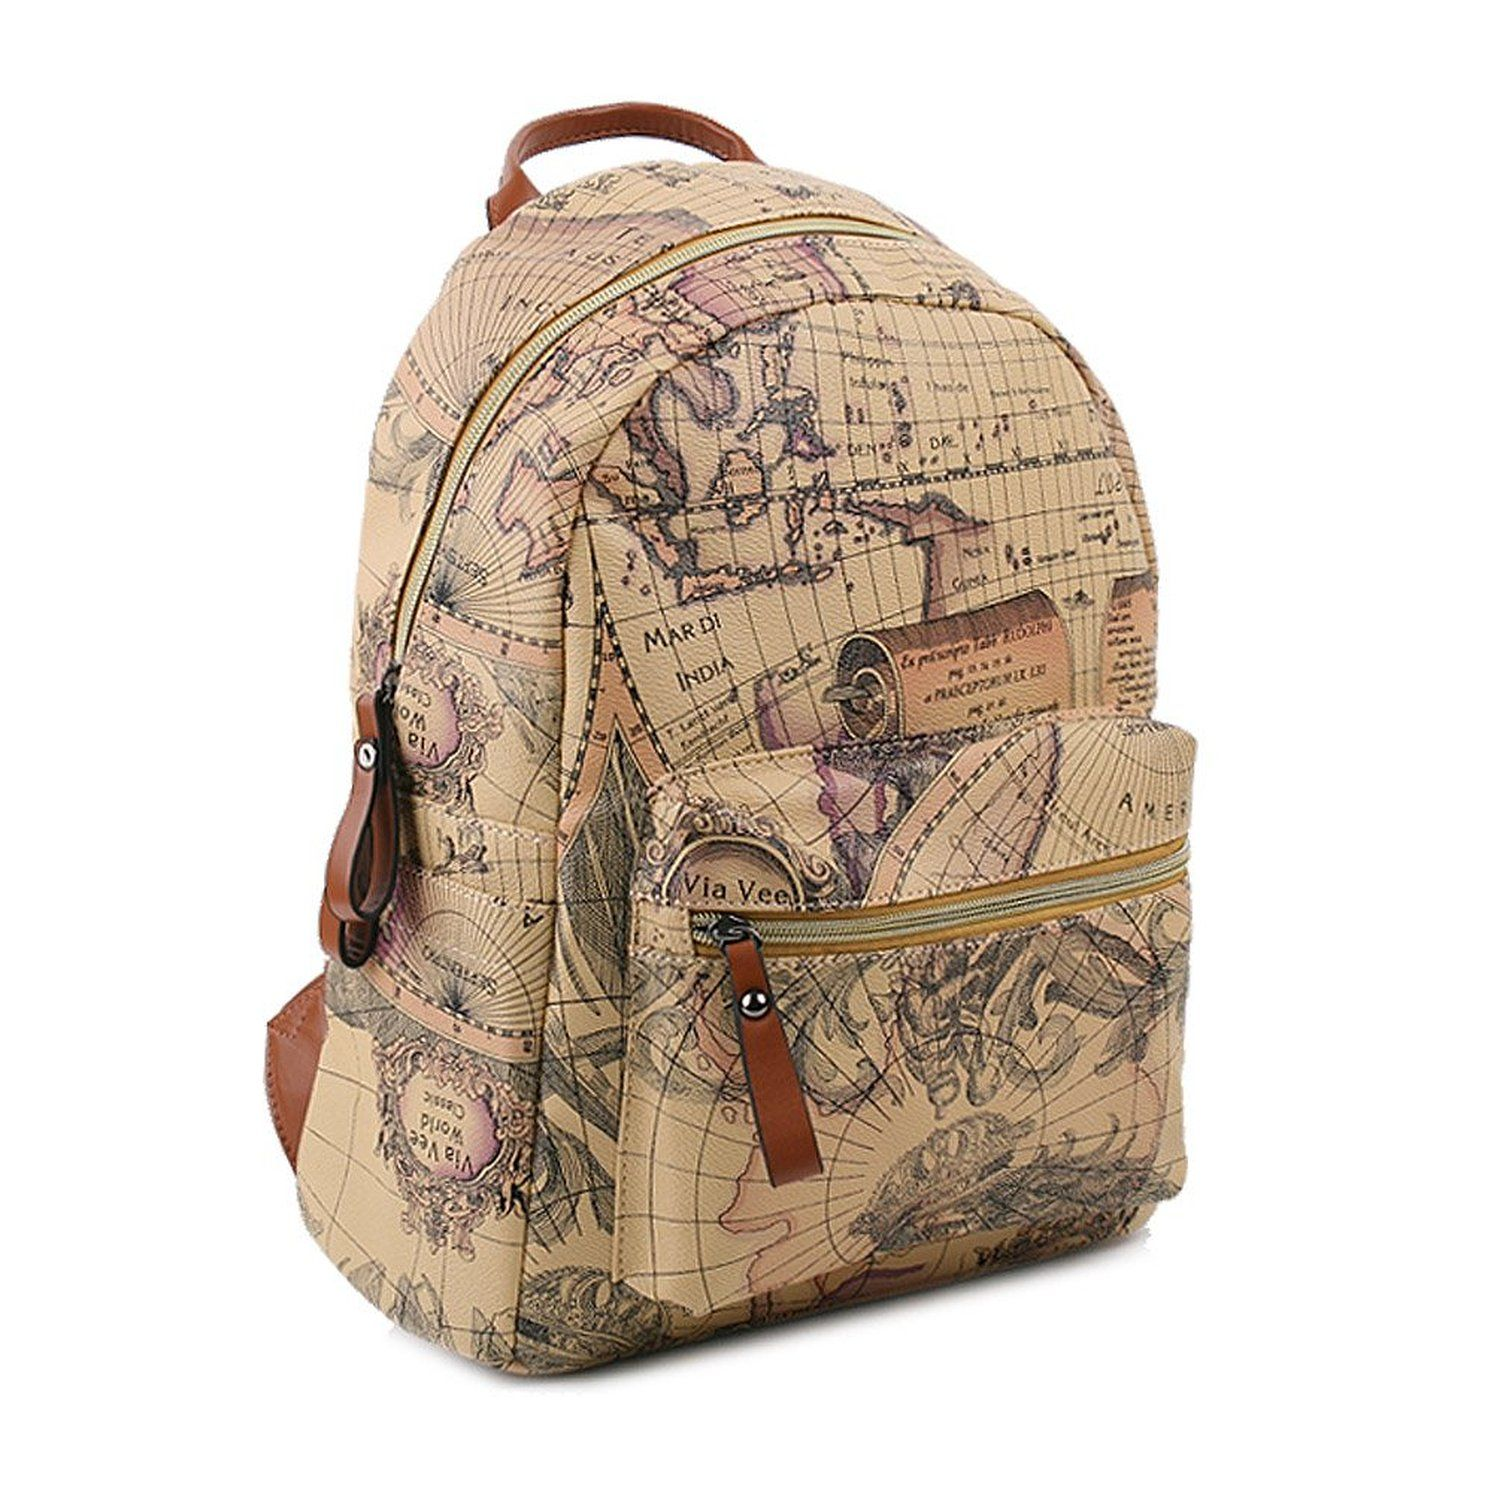 Copi womens map print pattern collection fashion backpack wow copi womens map print pattern collection fashion backpack wow i love this check it out now travel backpack travels pinterest gumiabroncs Image collections